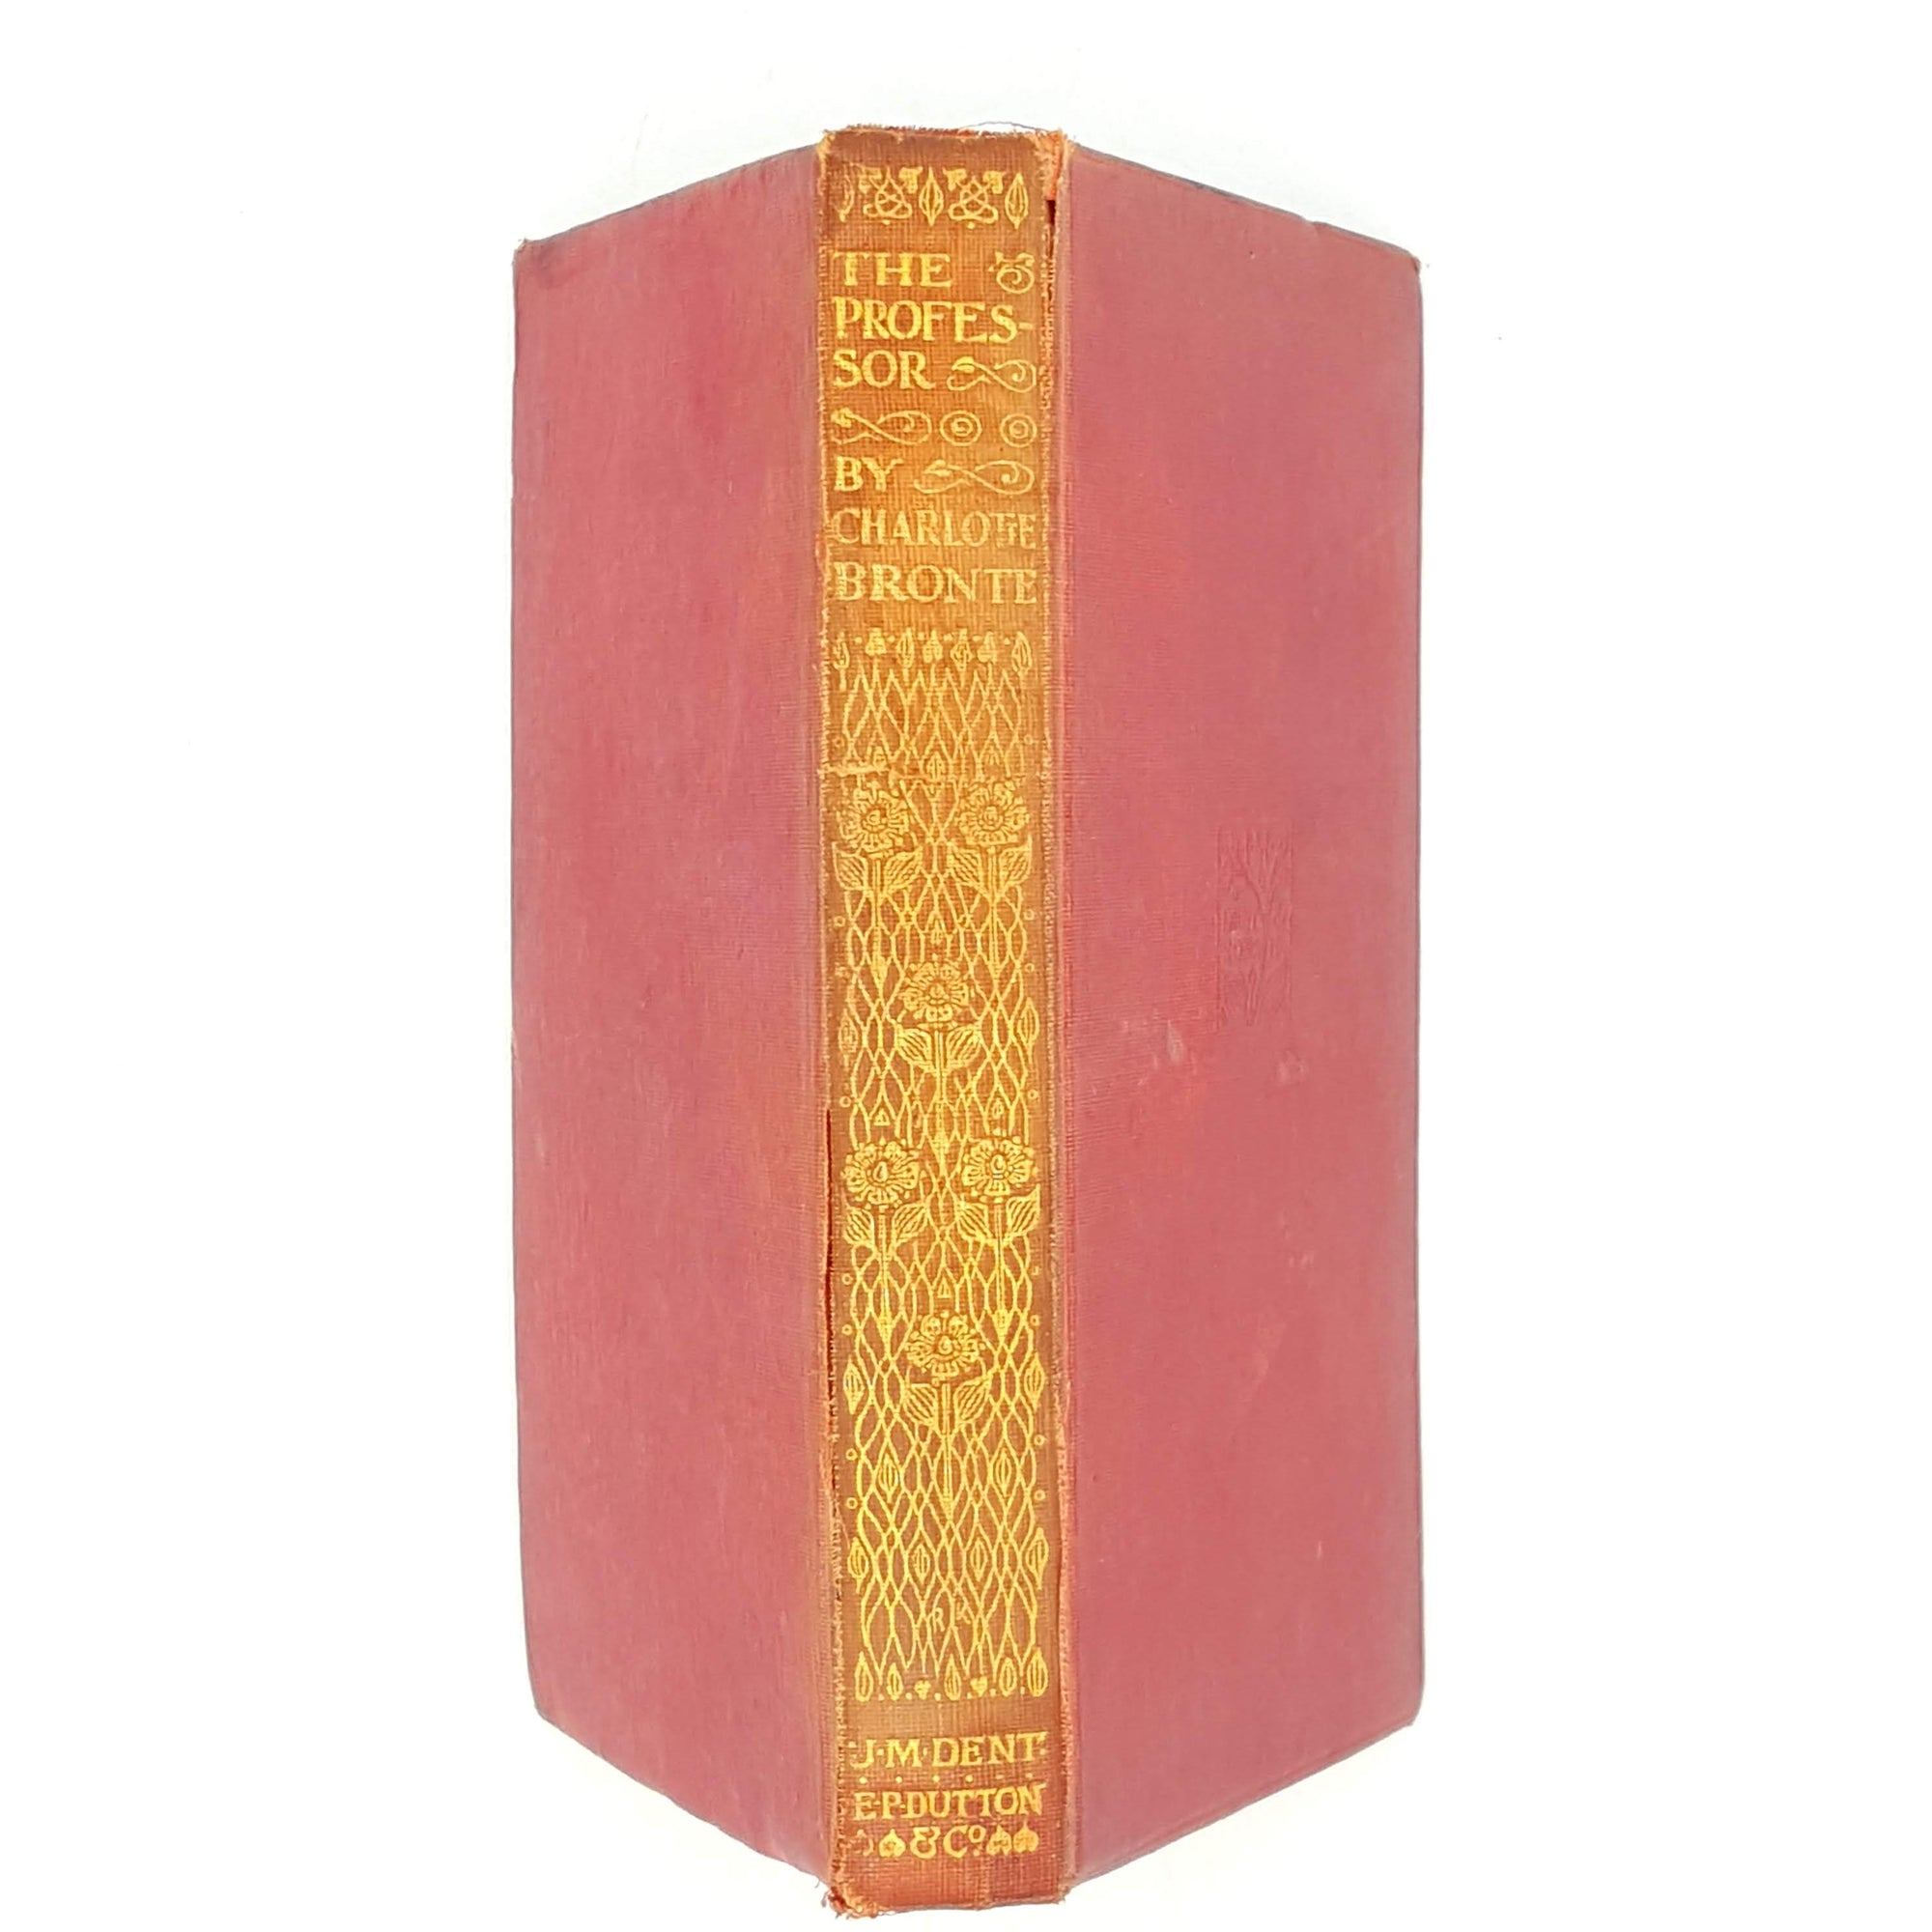 the-professor-dent-red-thrift-books-classics-old-charlotte-bronte-country-house-library-book-decorative-vintage-